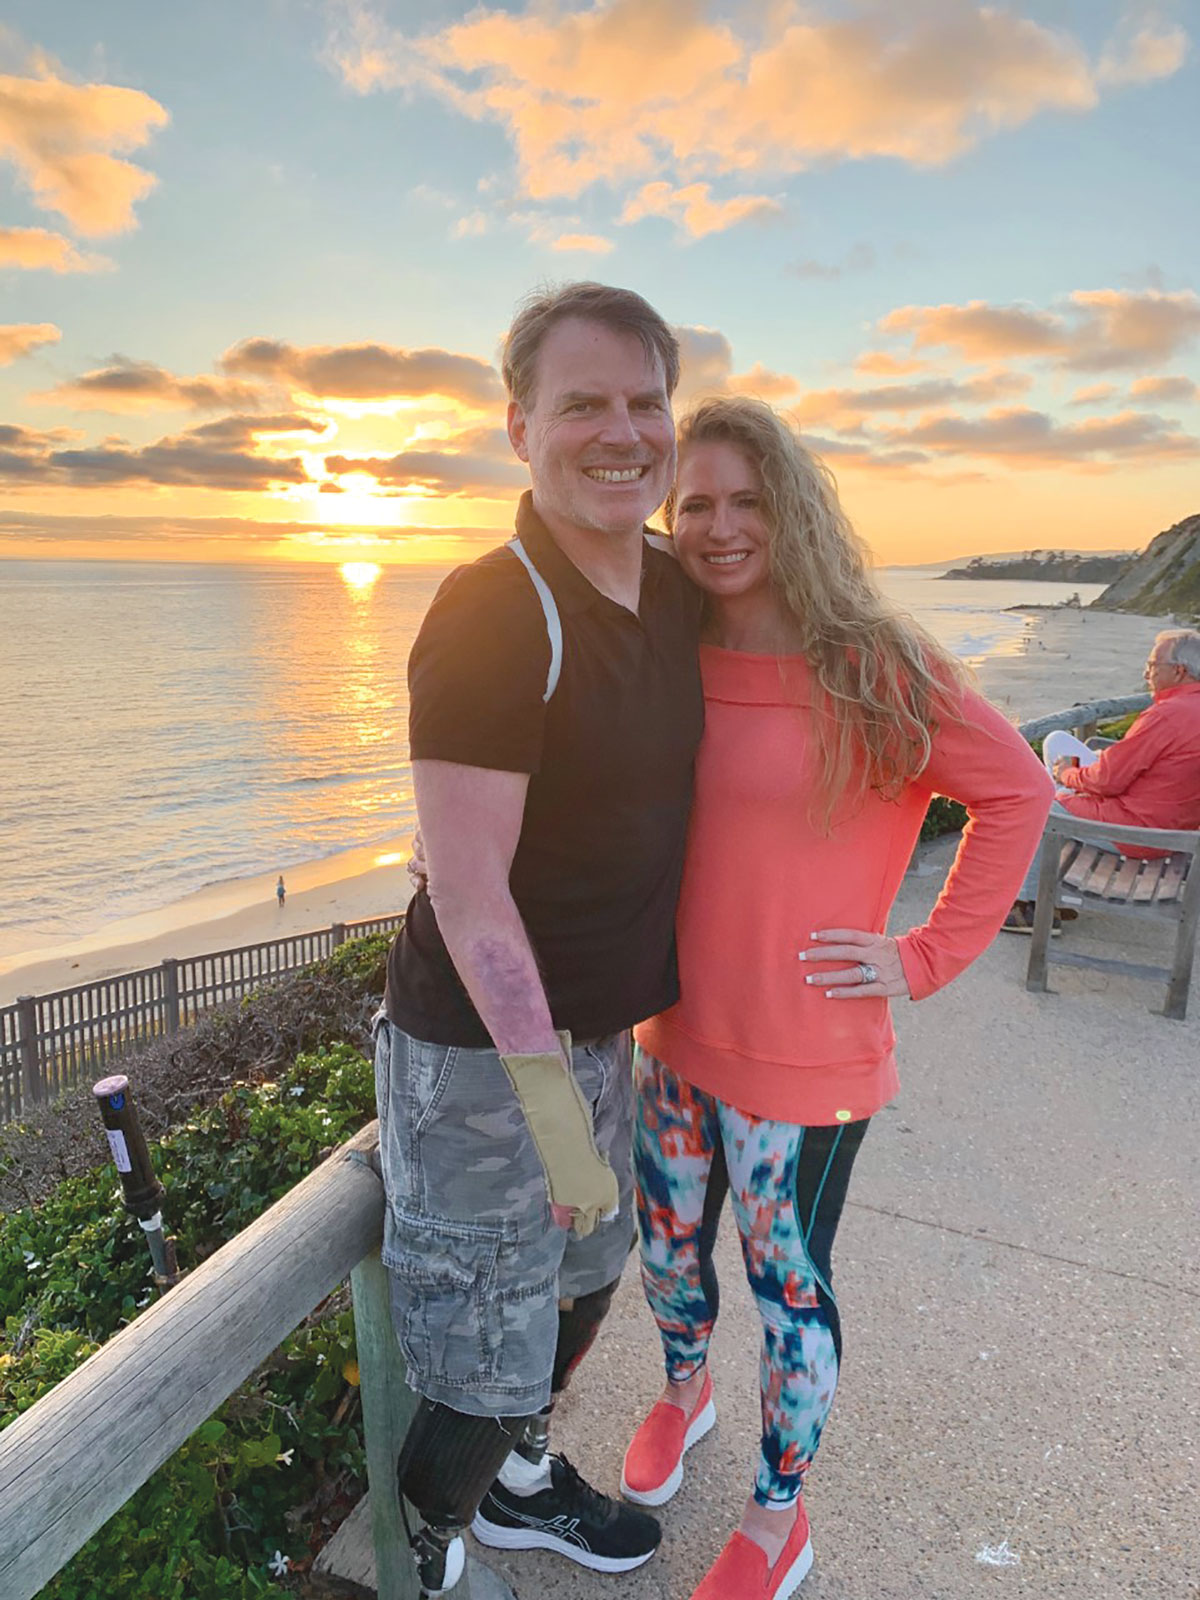 Marty Hartigan standing outside with his wife at sunset